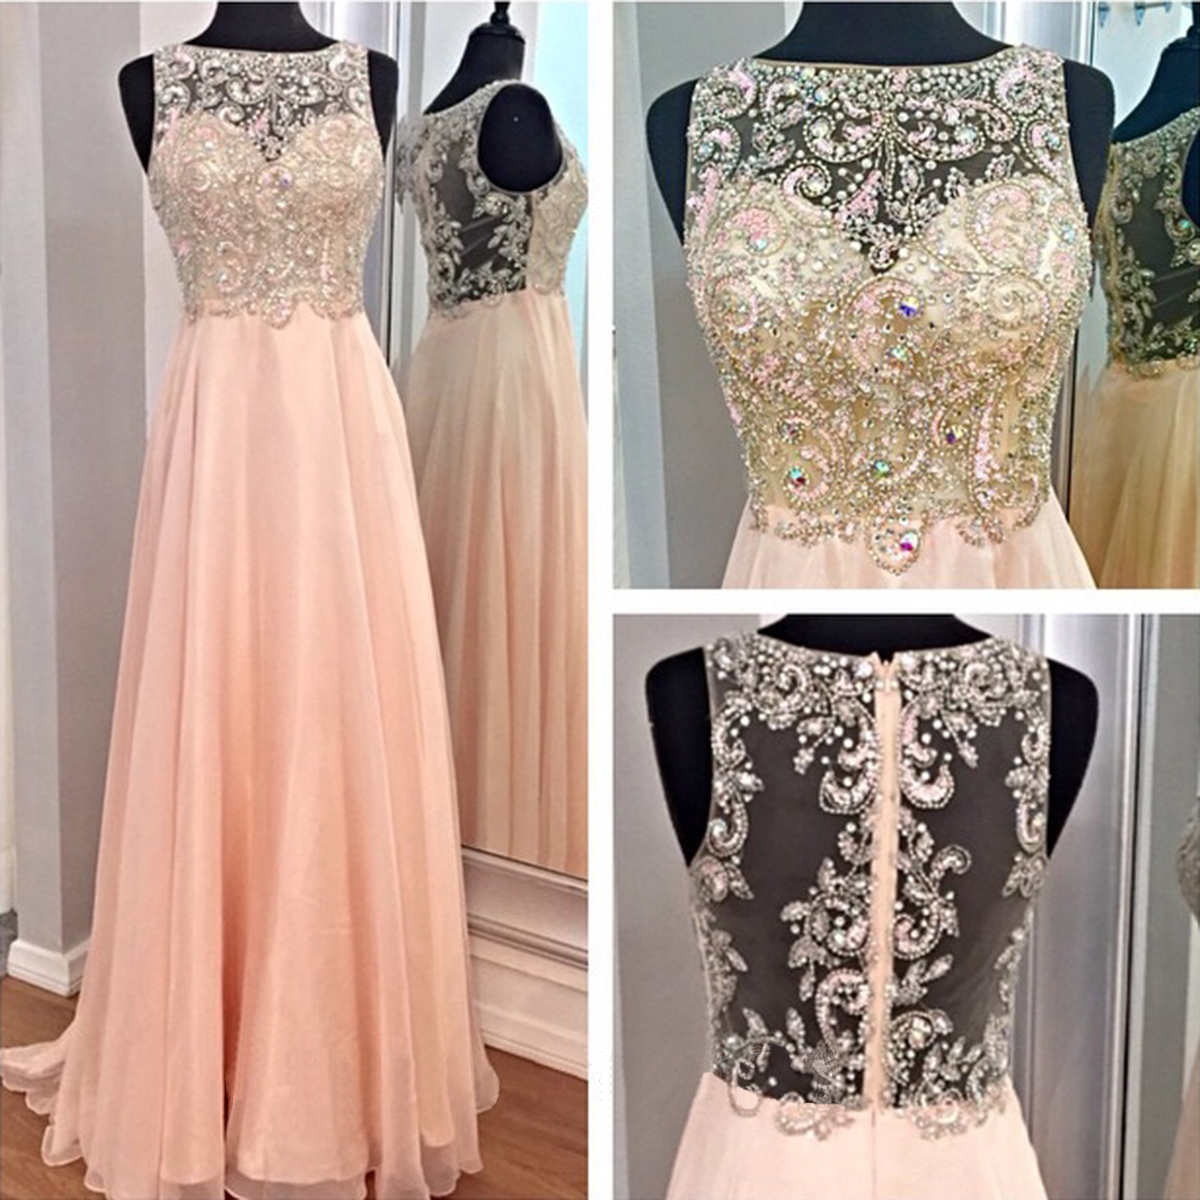 Long Prom Dresses 2015 with Rhinestones